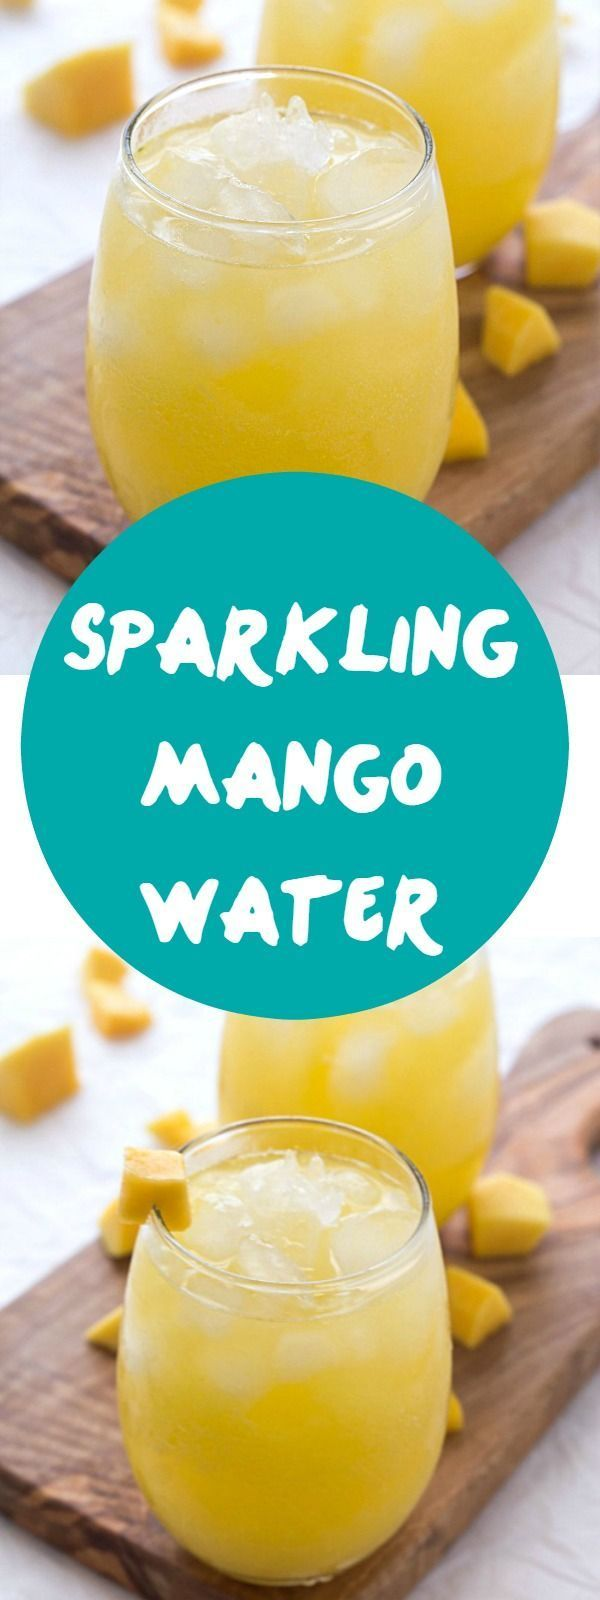 Sparkling Mango Water - Calling all mango smoothie lovers! Absolutely delicious and refreshing on a hot summer day! Perfect addition to your sparkling water recipes!